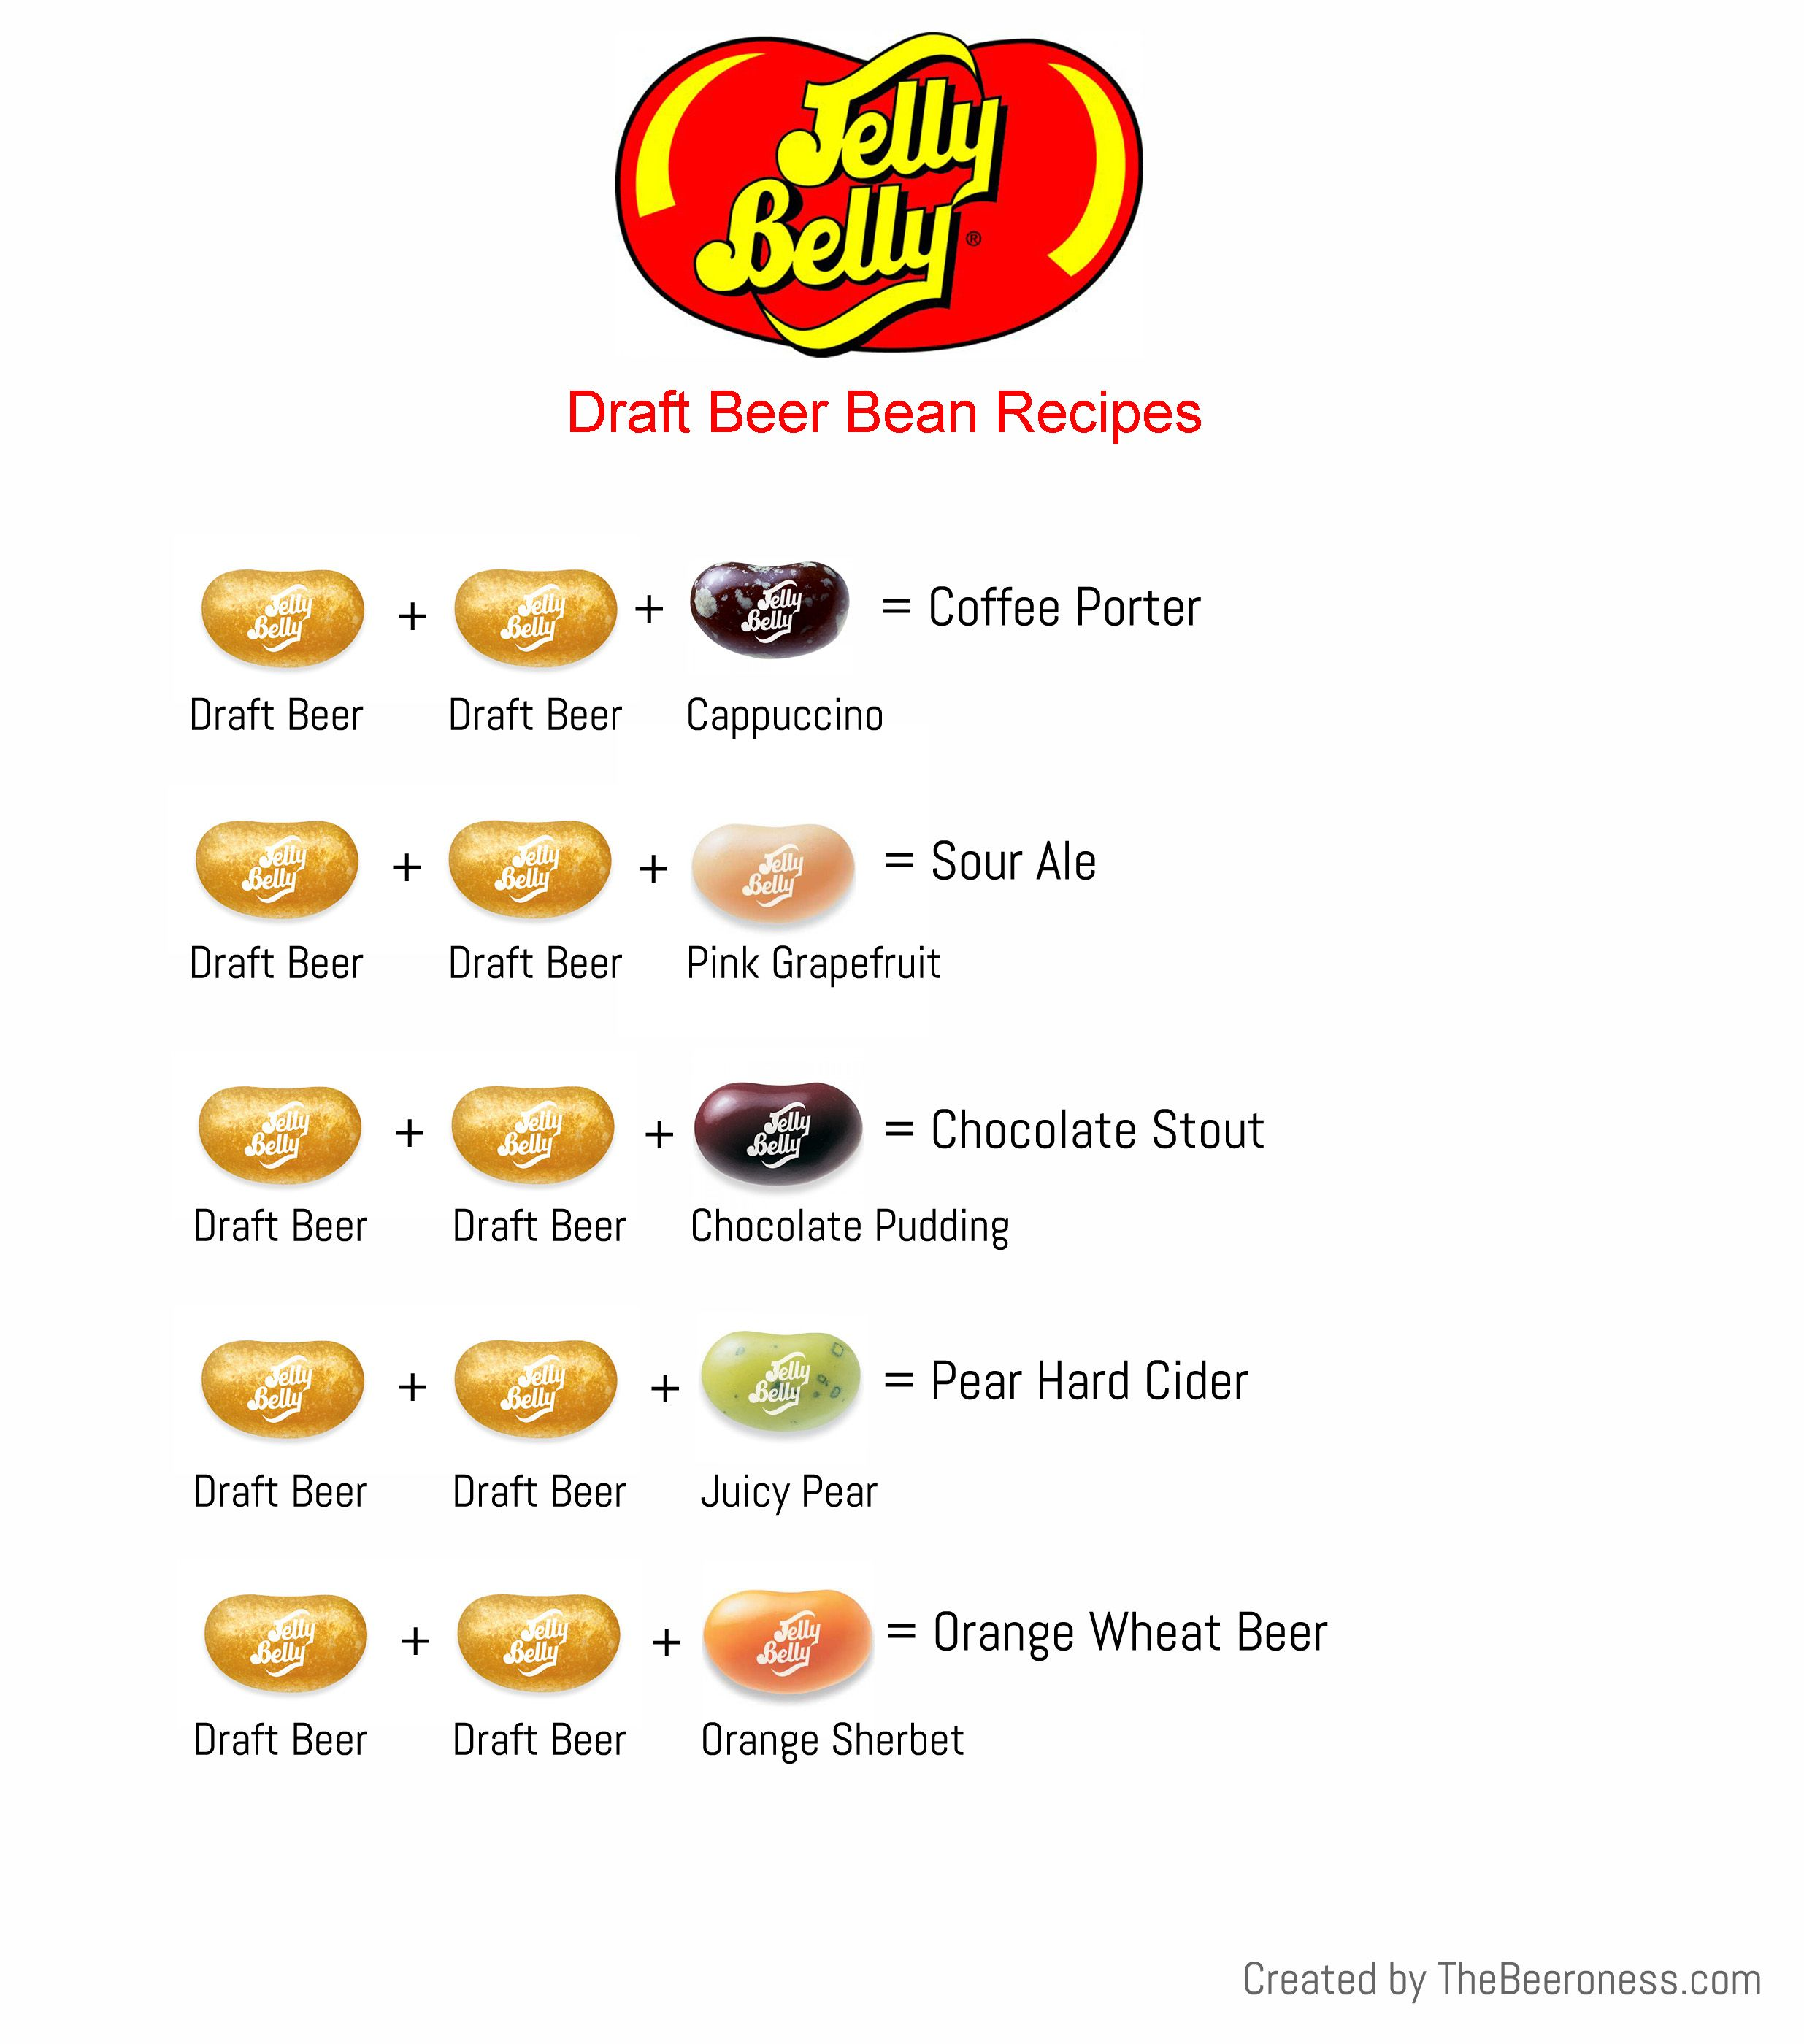 More Draft Beer Jelly Belly Recipes Courtesy Of The Beeroness